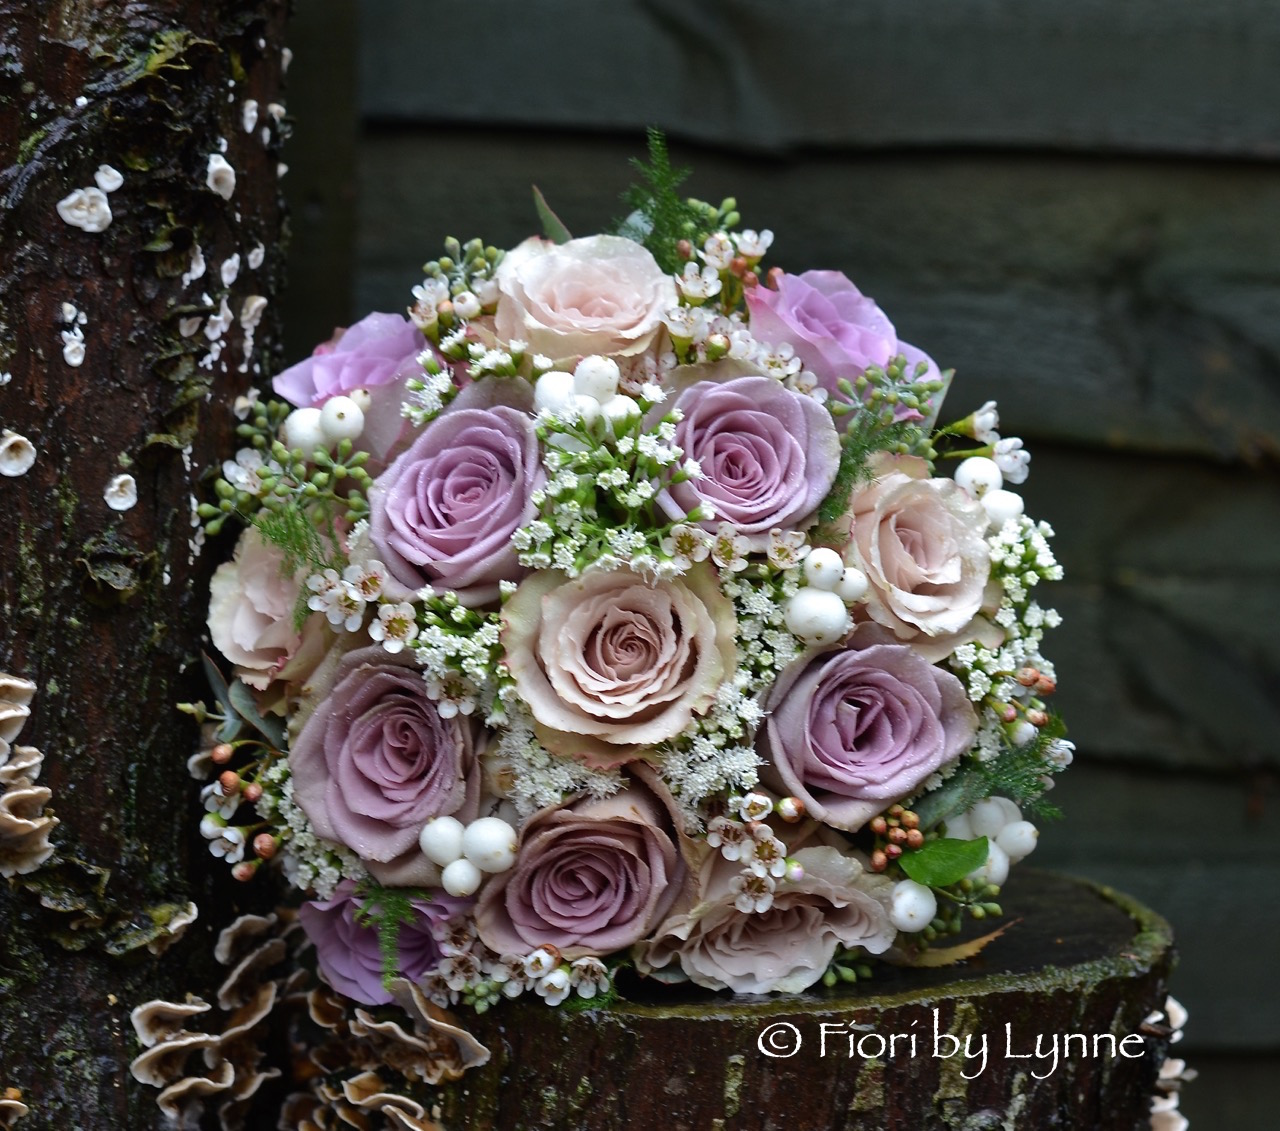 autumnal-bouquet-vintage-tones-champagnememorylane.roses-berry.jpg